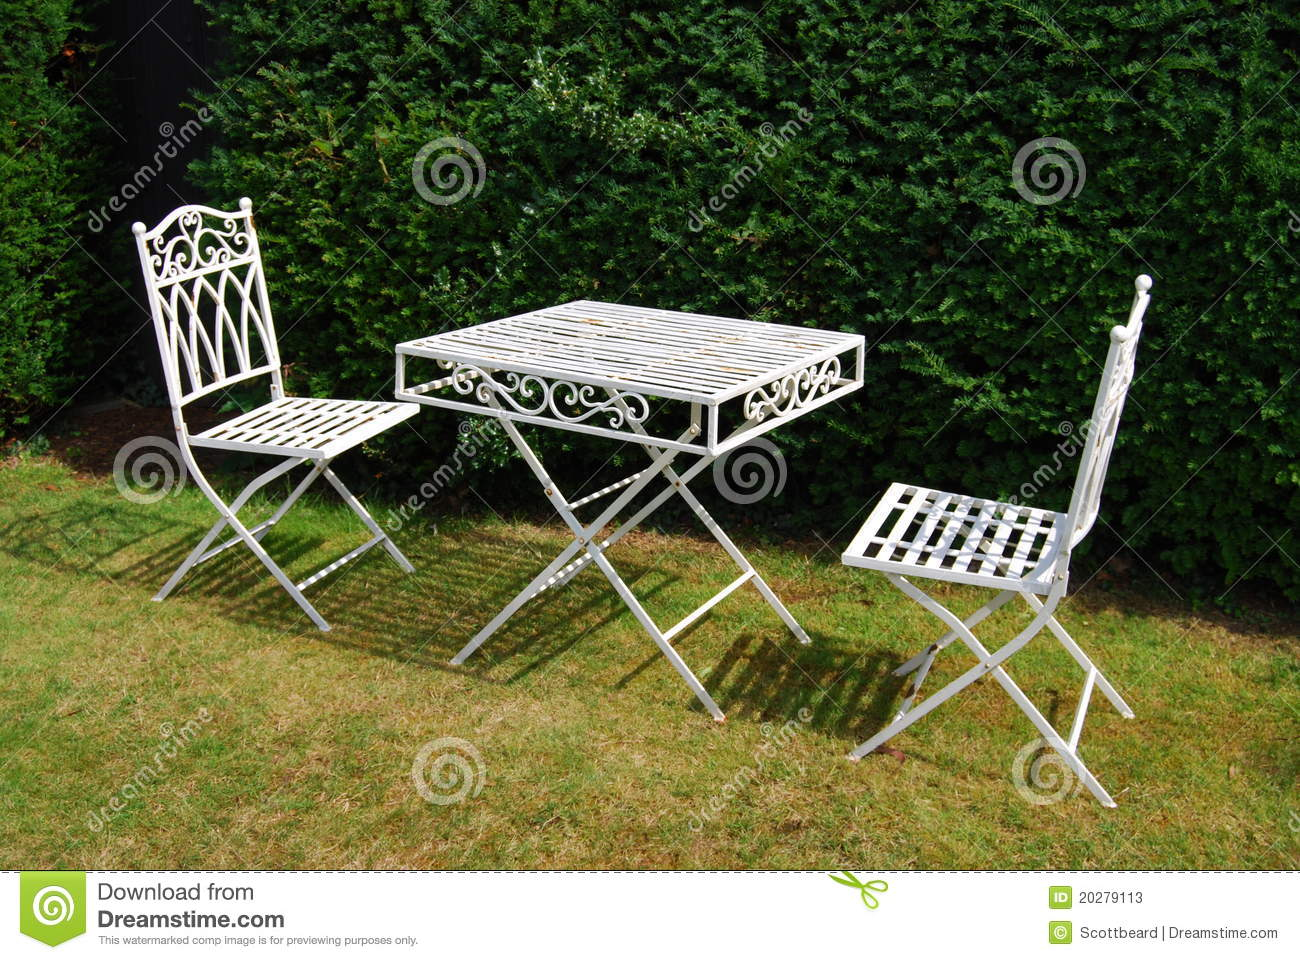 Chairs furniture garden grass lawn metal table two white